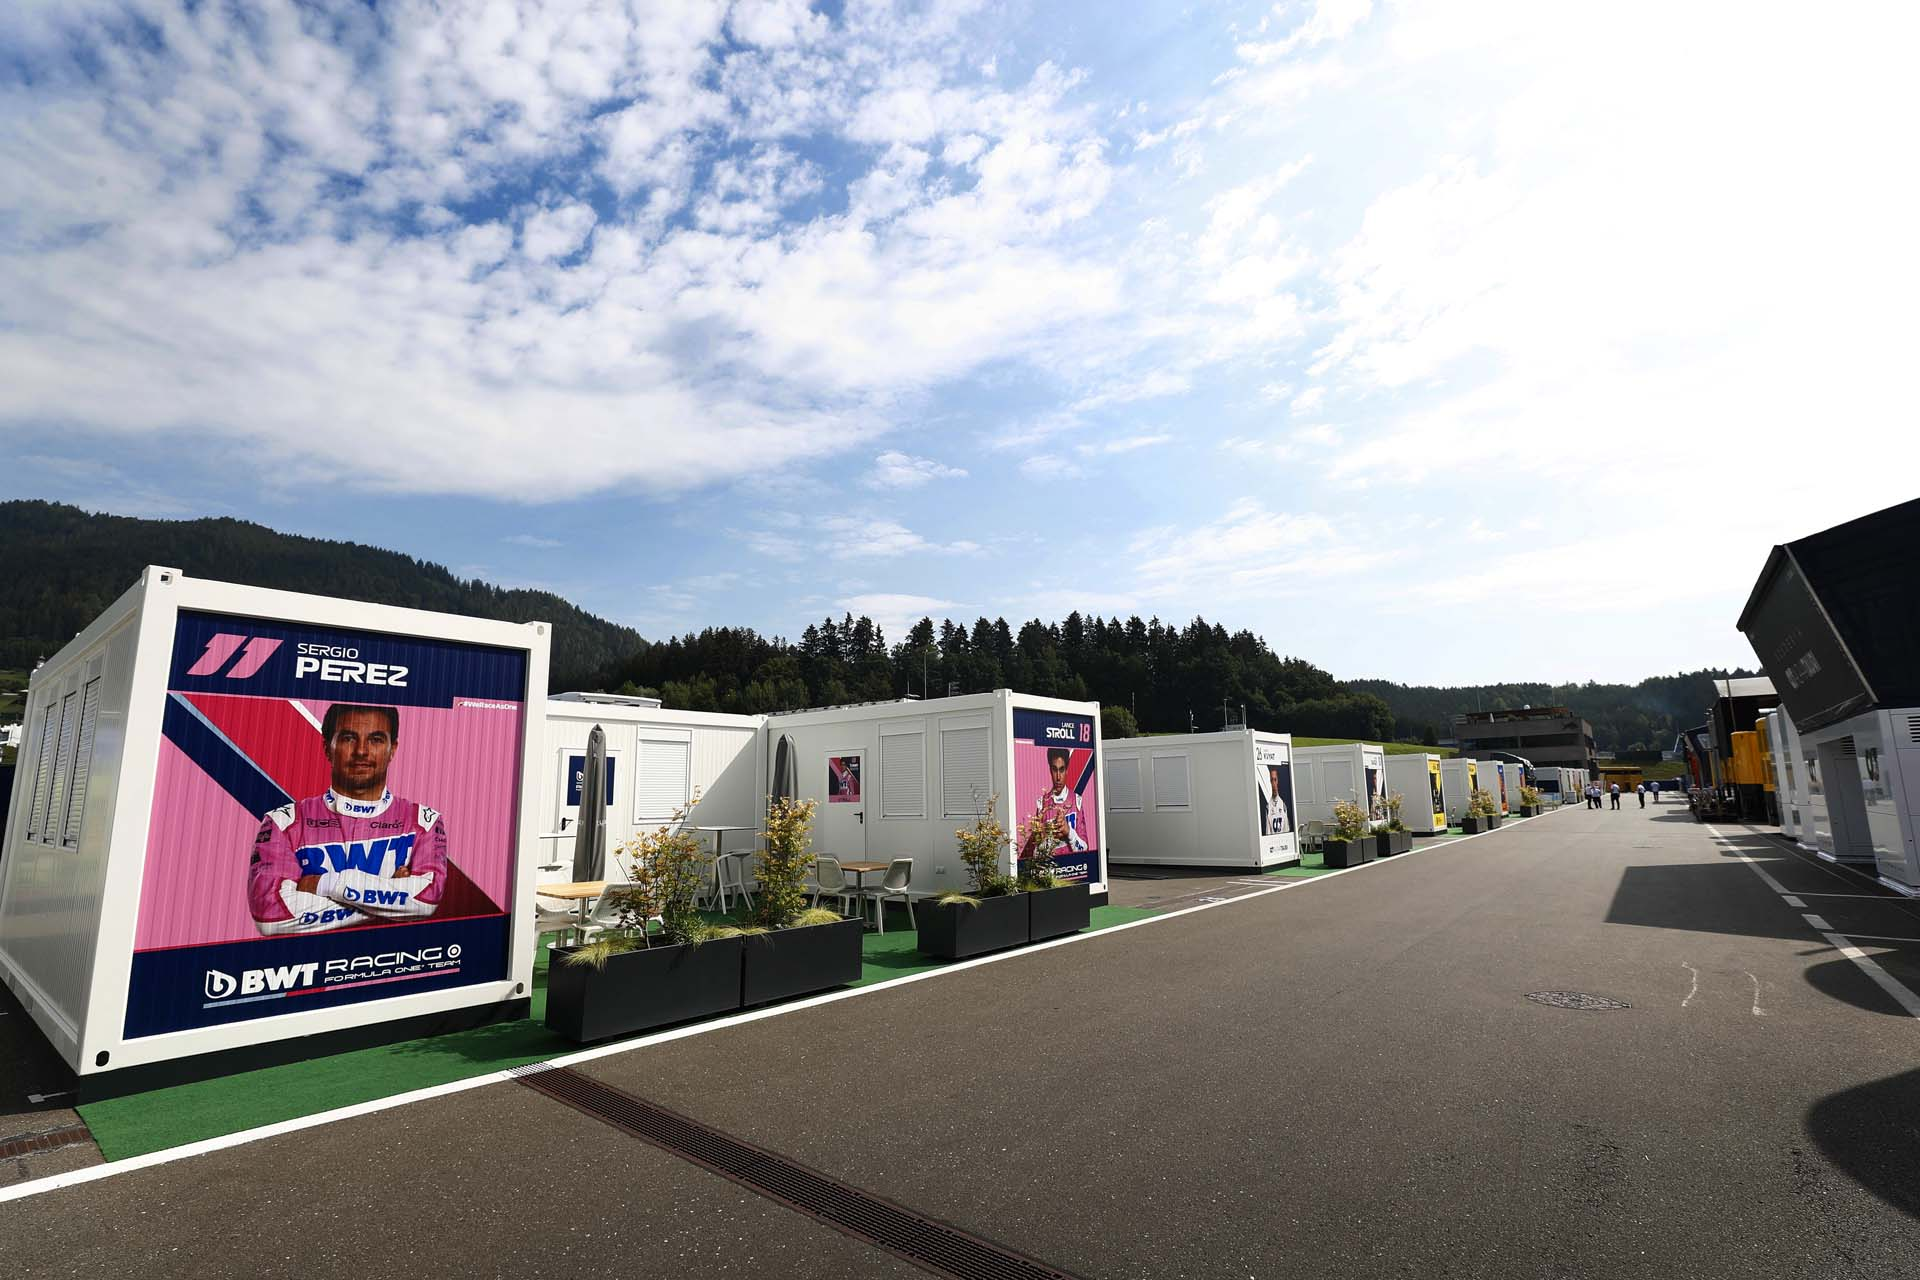 The paddock hospitality areas